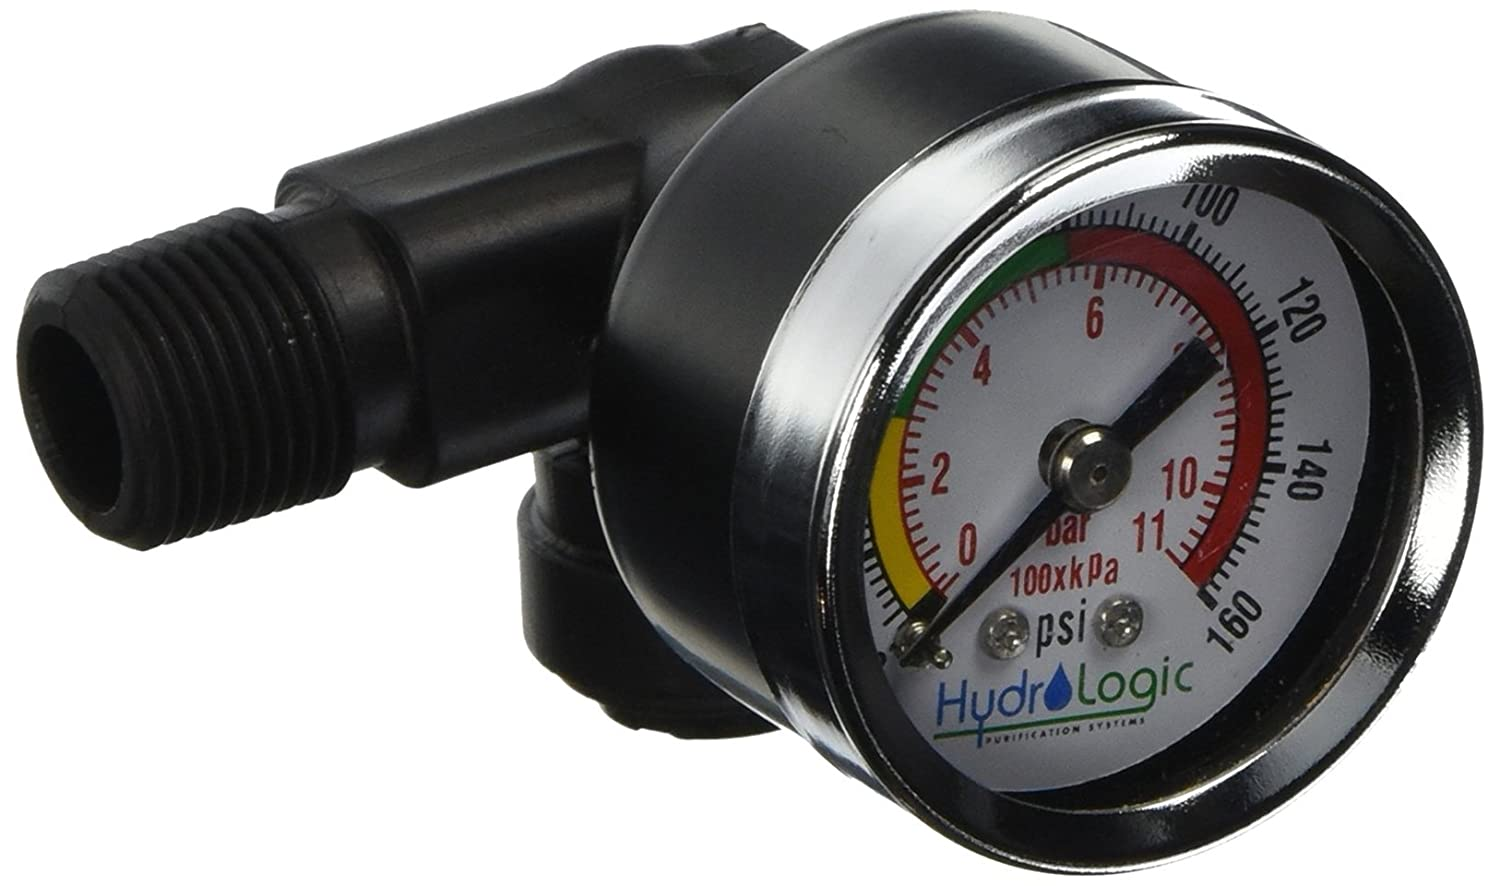 HydroLogic stealthRO 100 200 Pressure Gauge Fitting Assembly